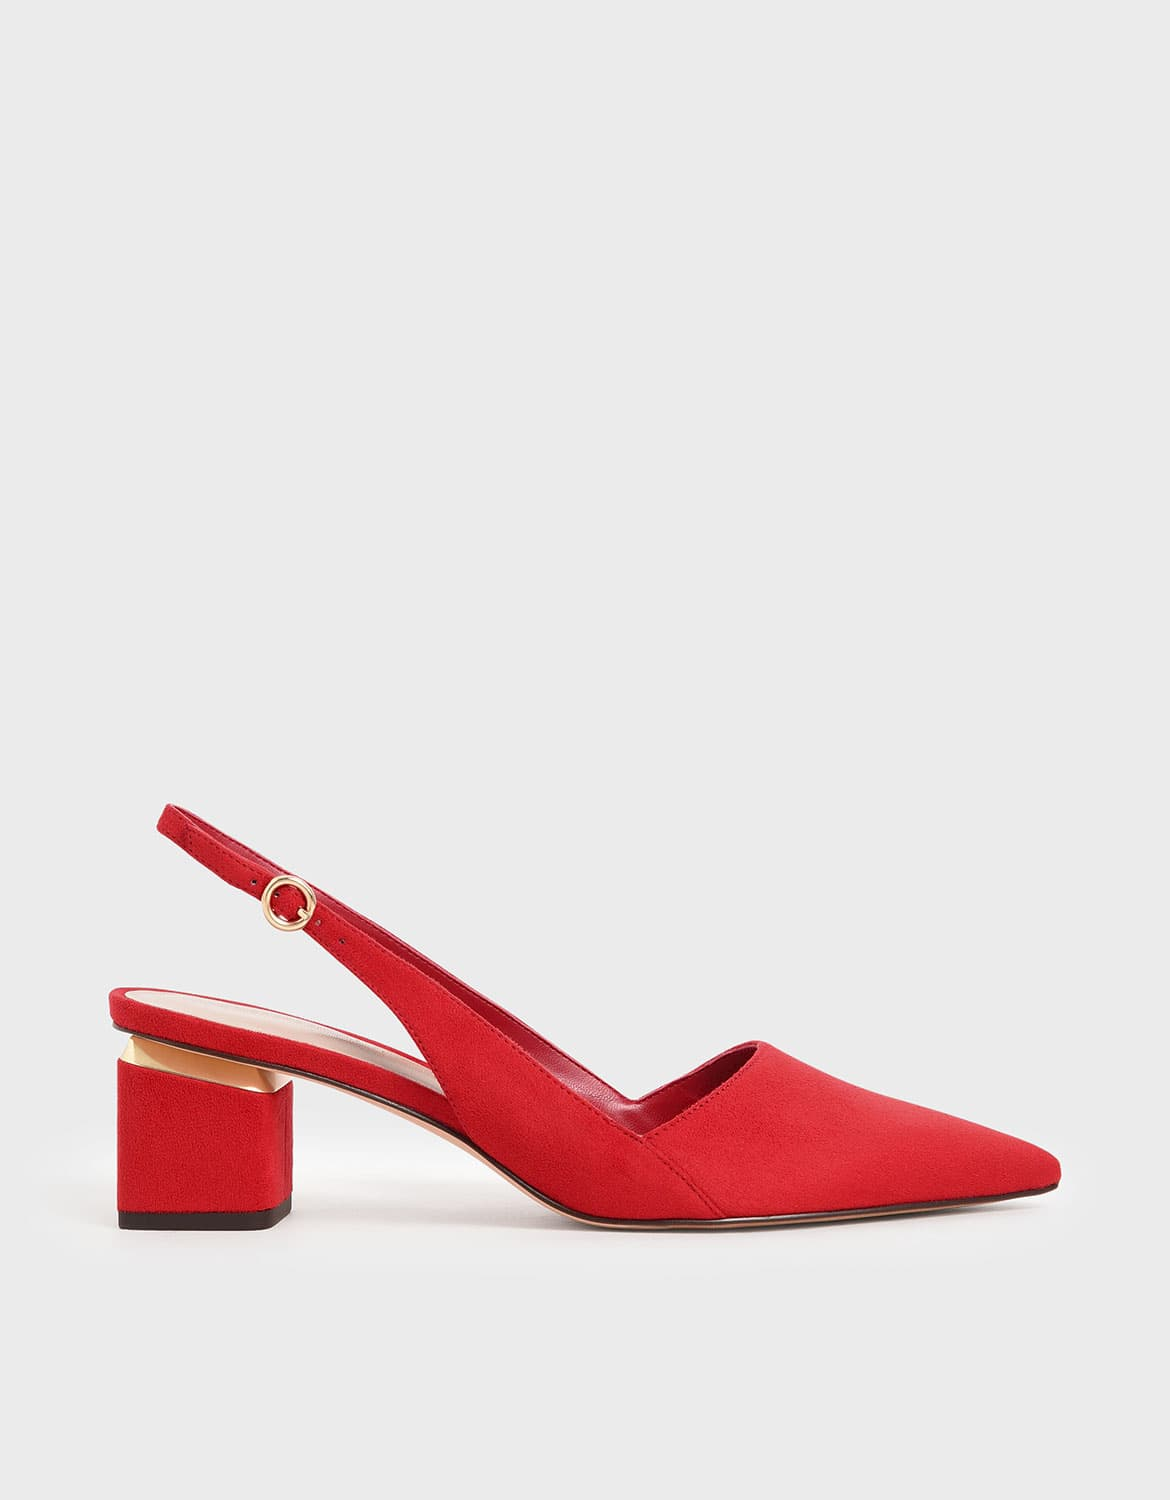 Women's pointed textured slingback heels in red – CHARLES & KEITH